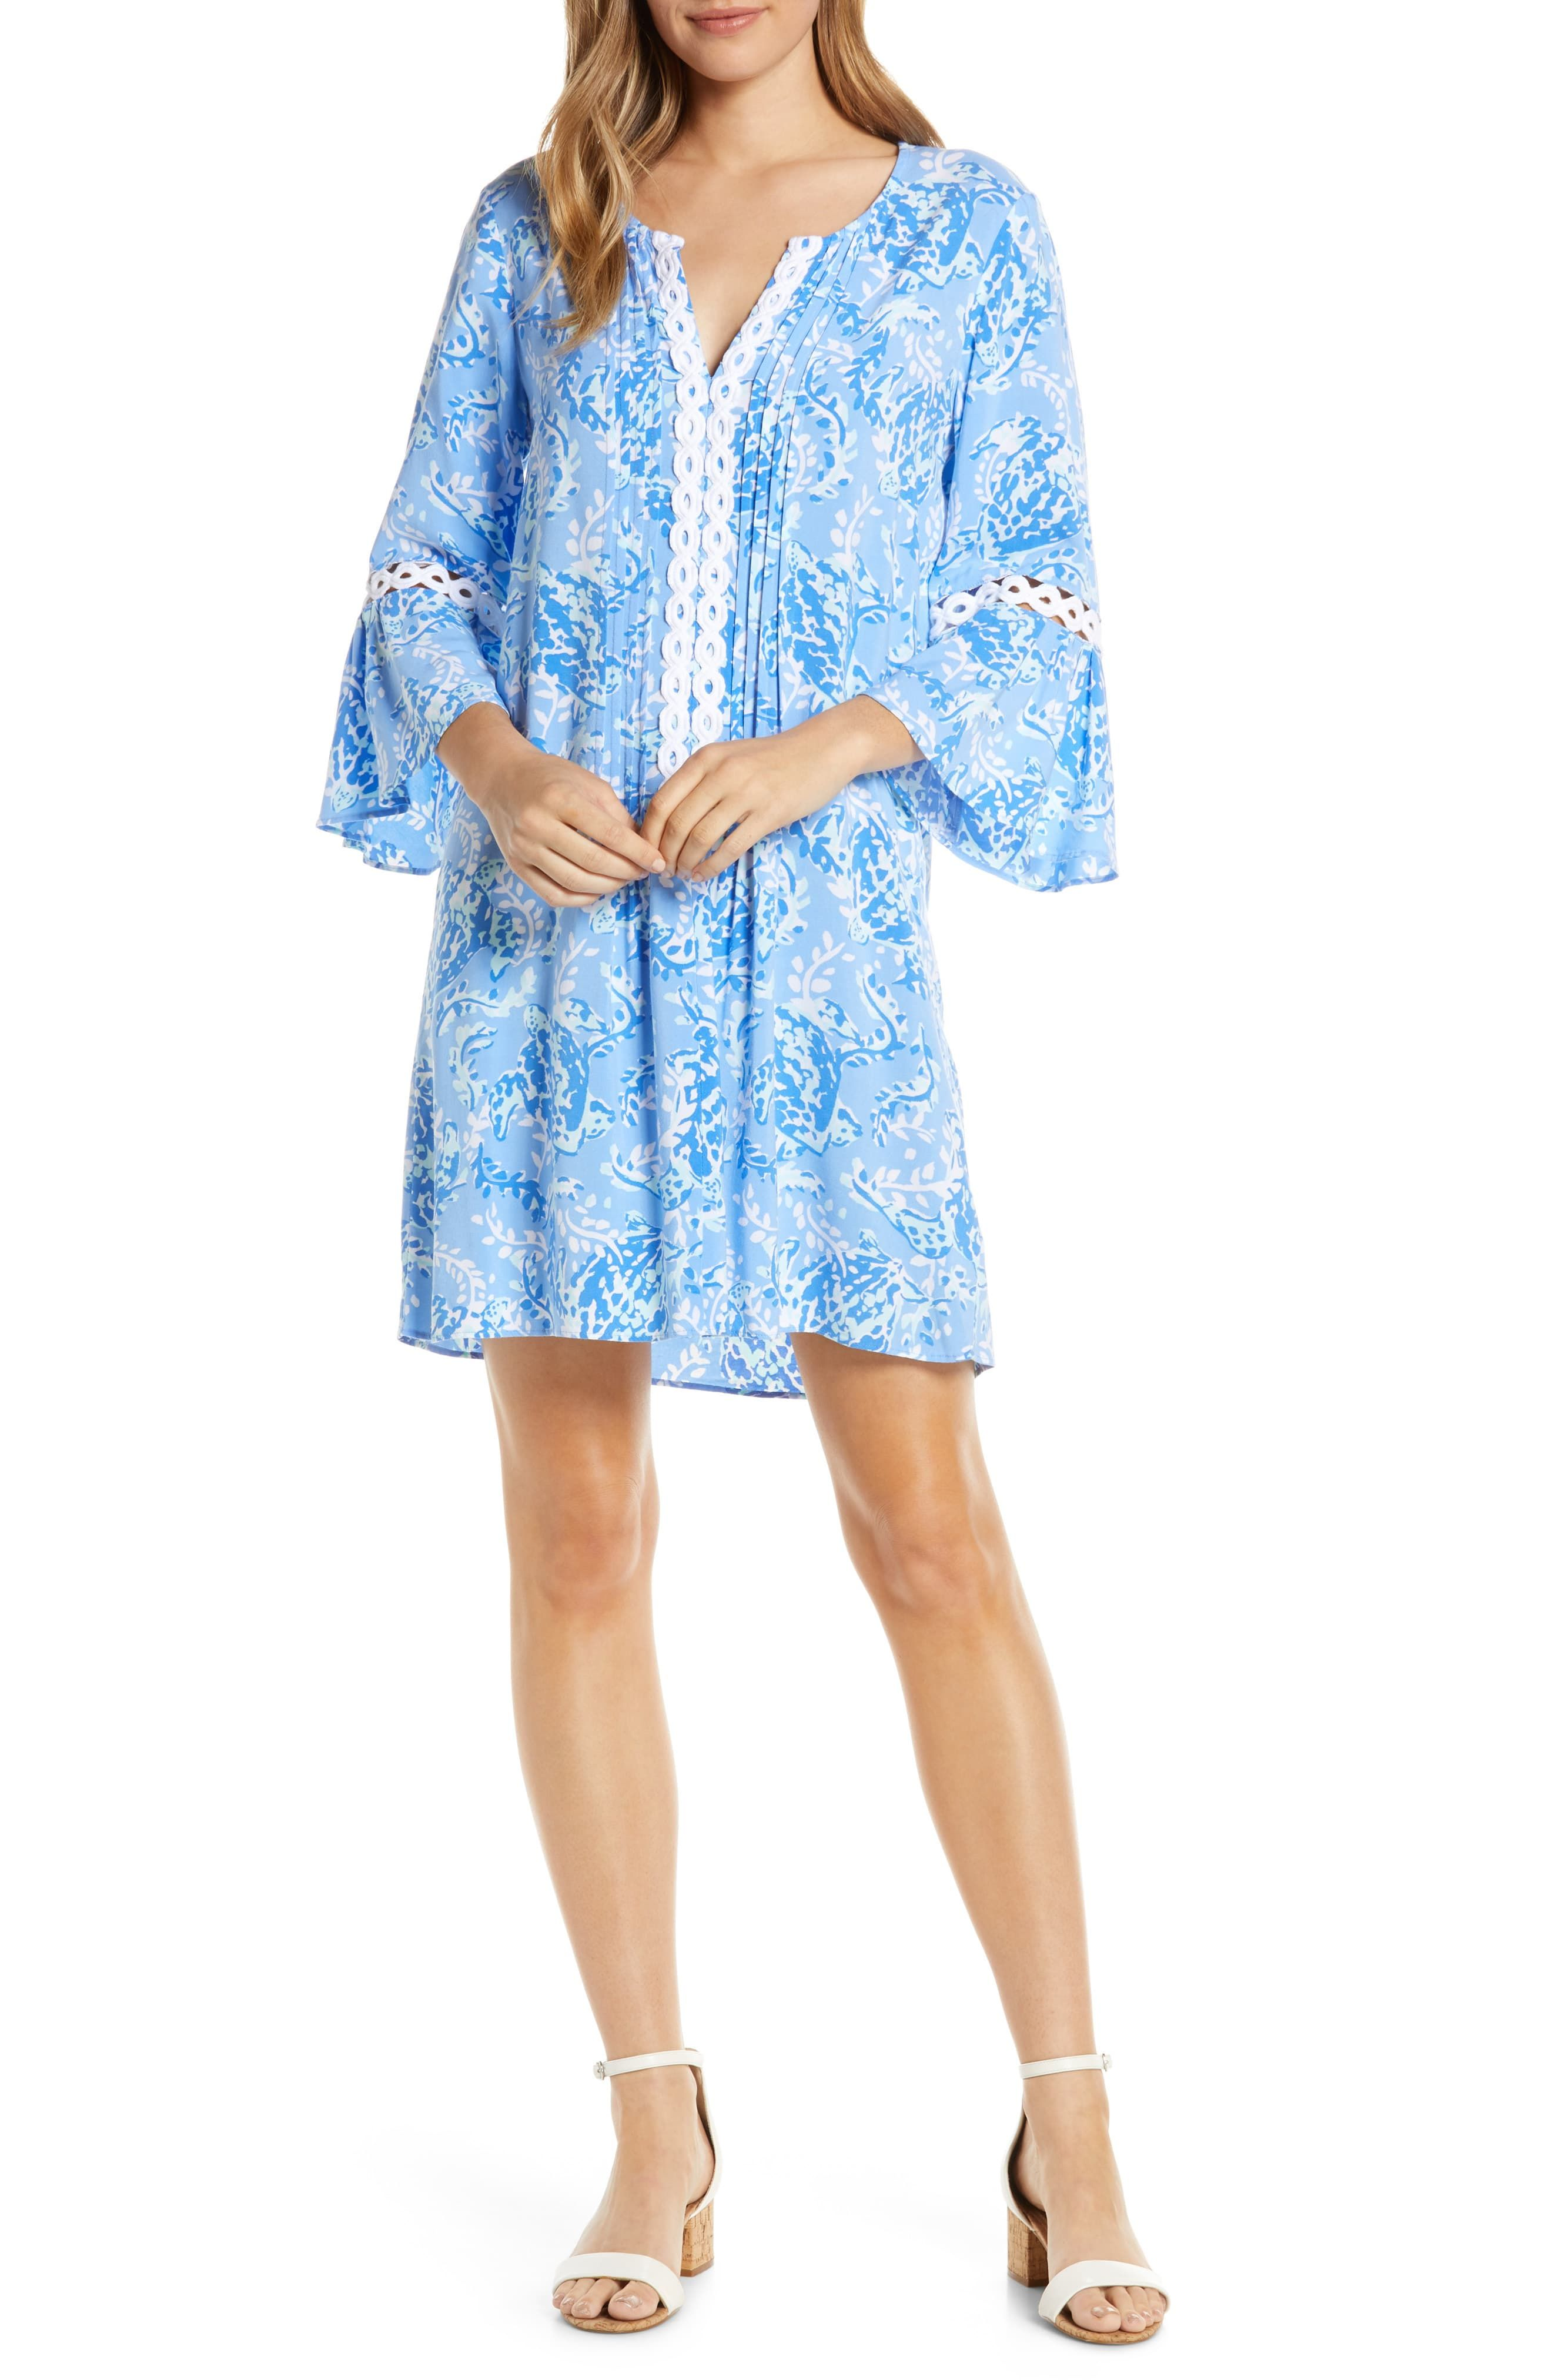 cb91eaadd6b Women's Lilly Pulitzer Hollie Tunic Dress, Size XX-Small - Blue in ...